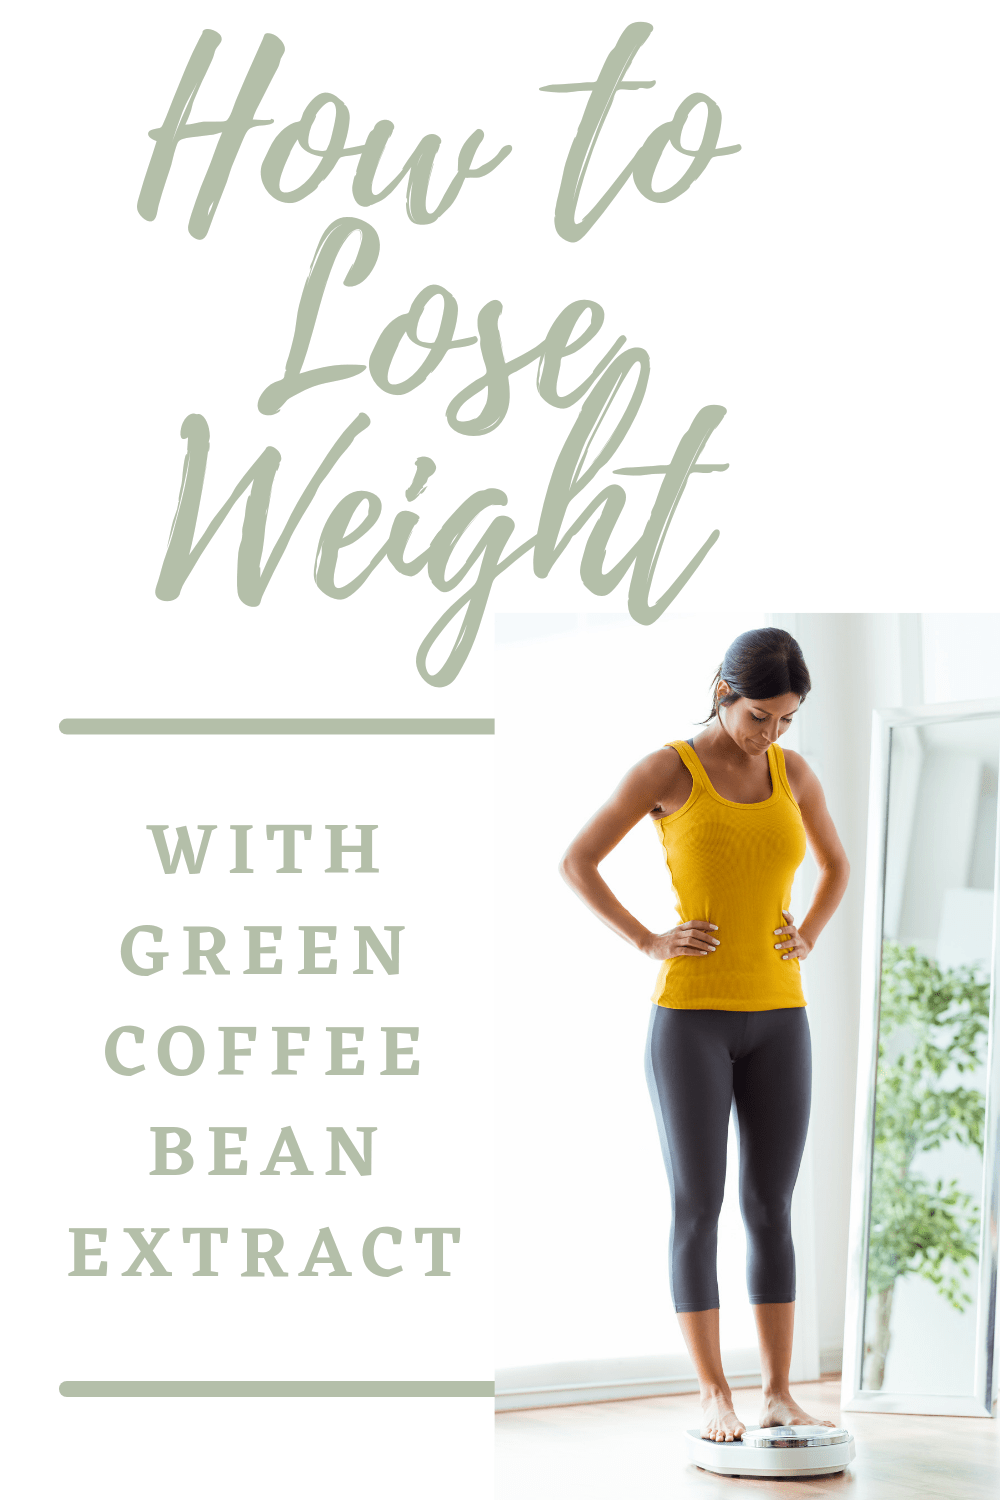 Lose weight with green coffee bean